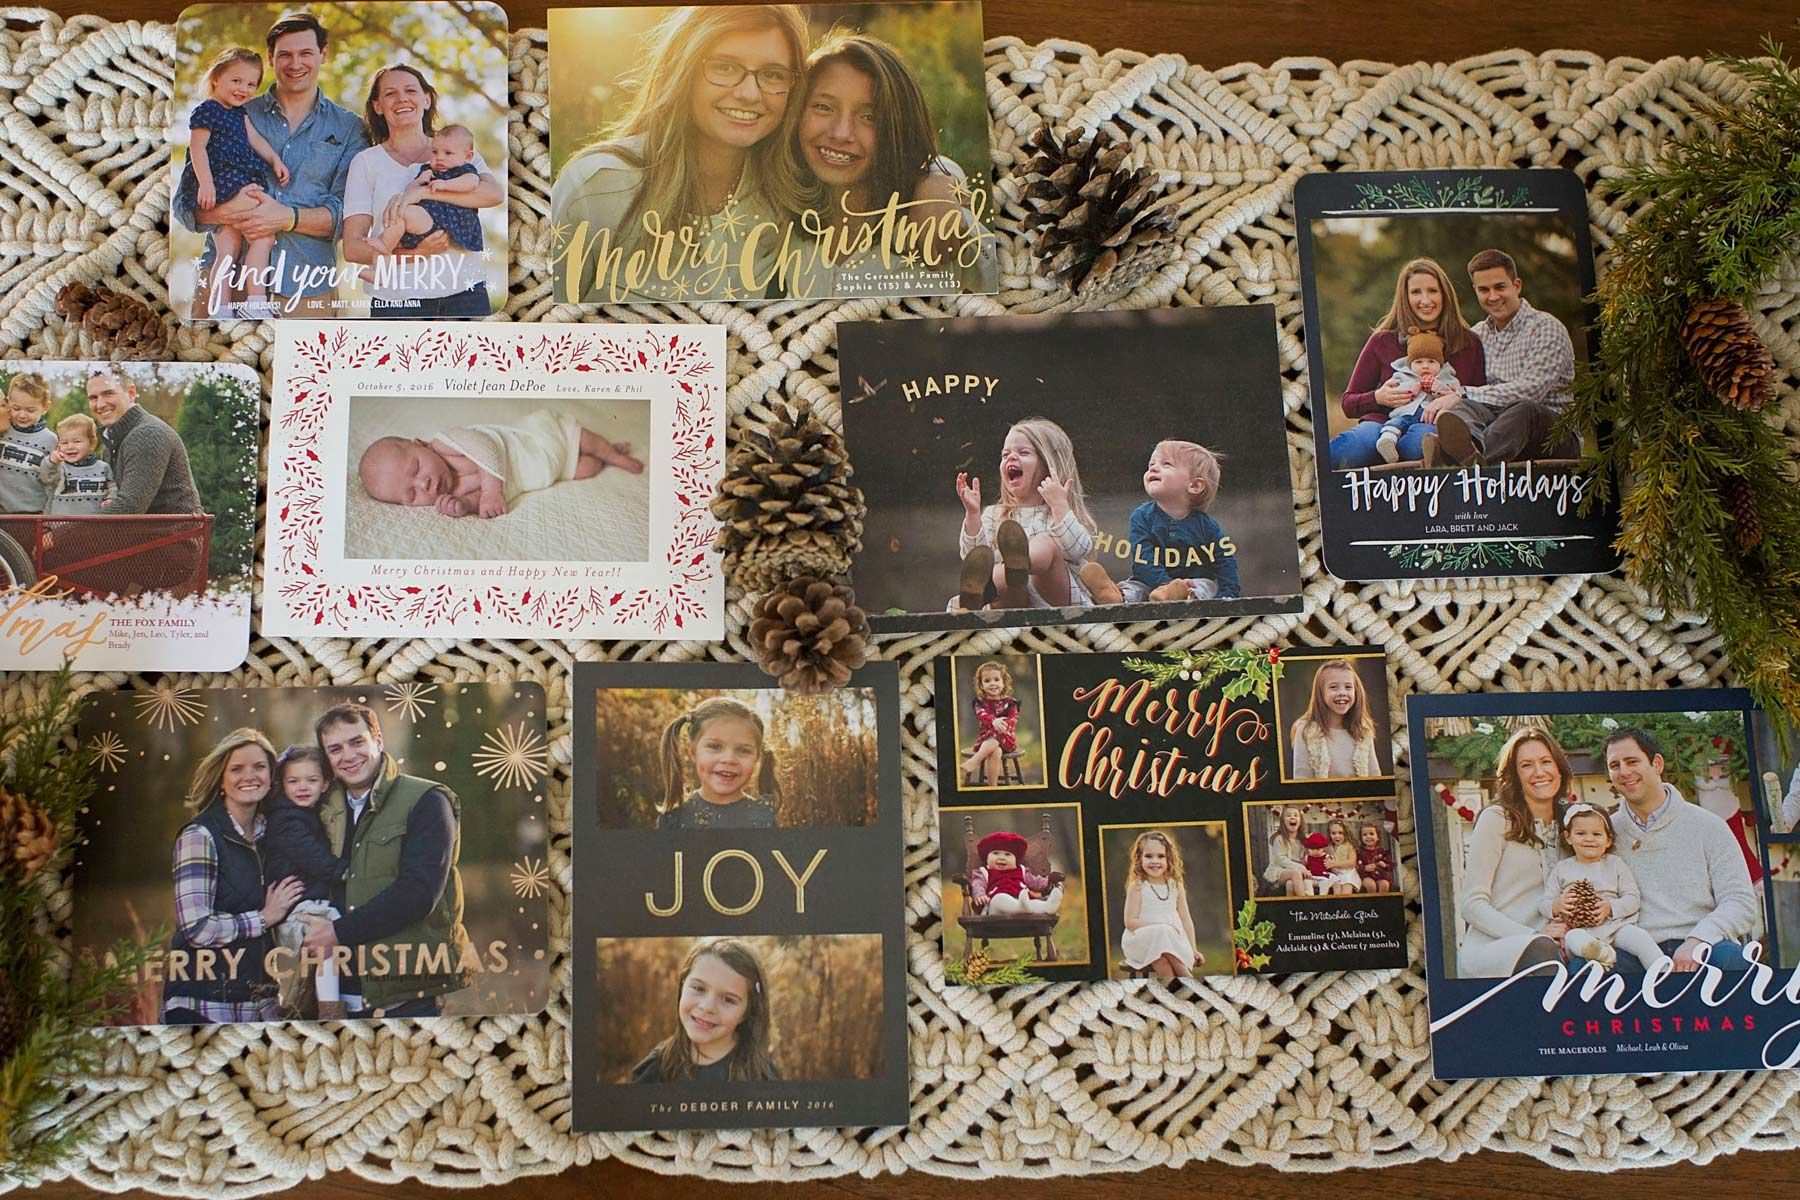 holiday photo cards arranged on a table